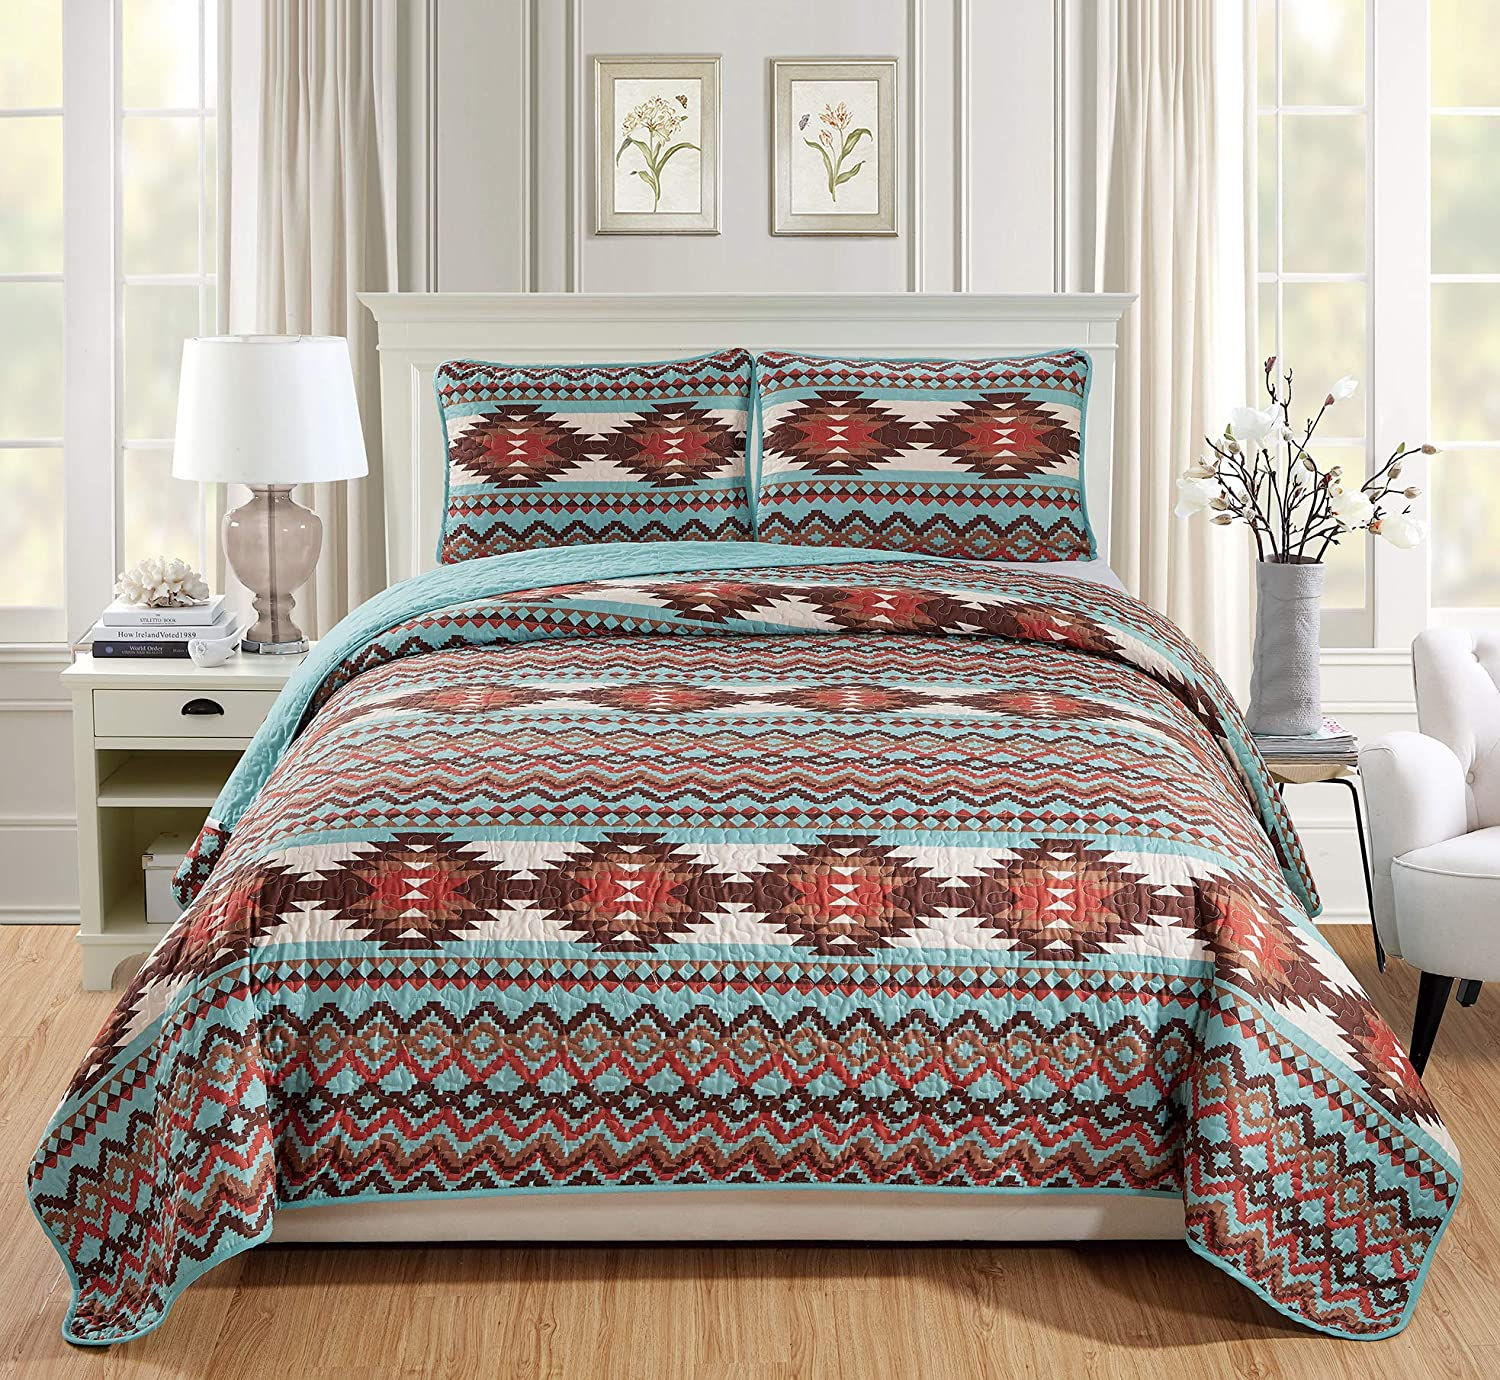 Rugs 4 Less Rustic Southwestern Twin Bedding Quilt Set Native American Tribal Bedspread Utah Turquoise Twin Quilt